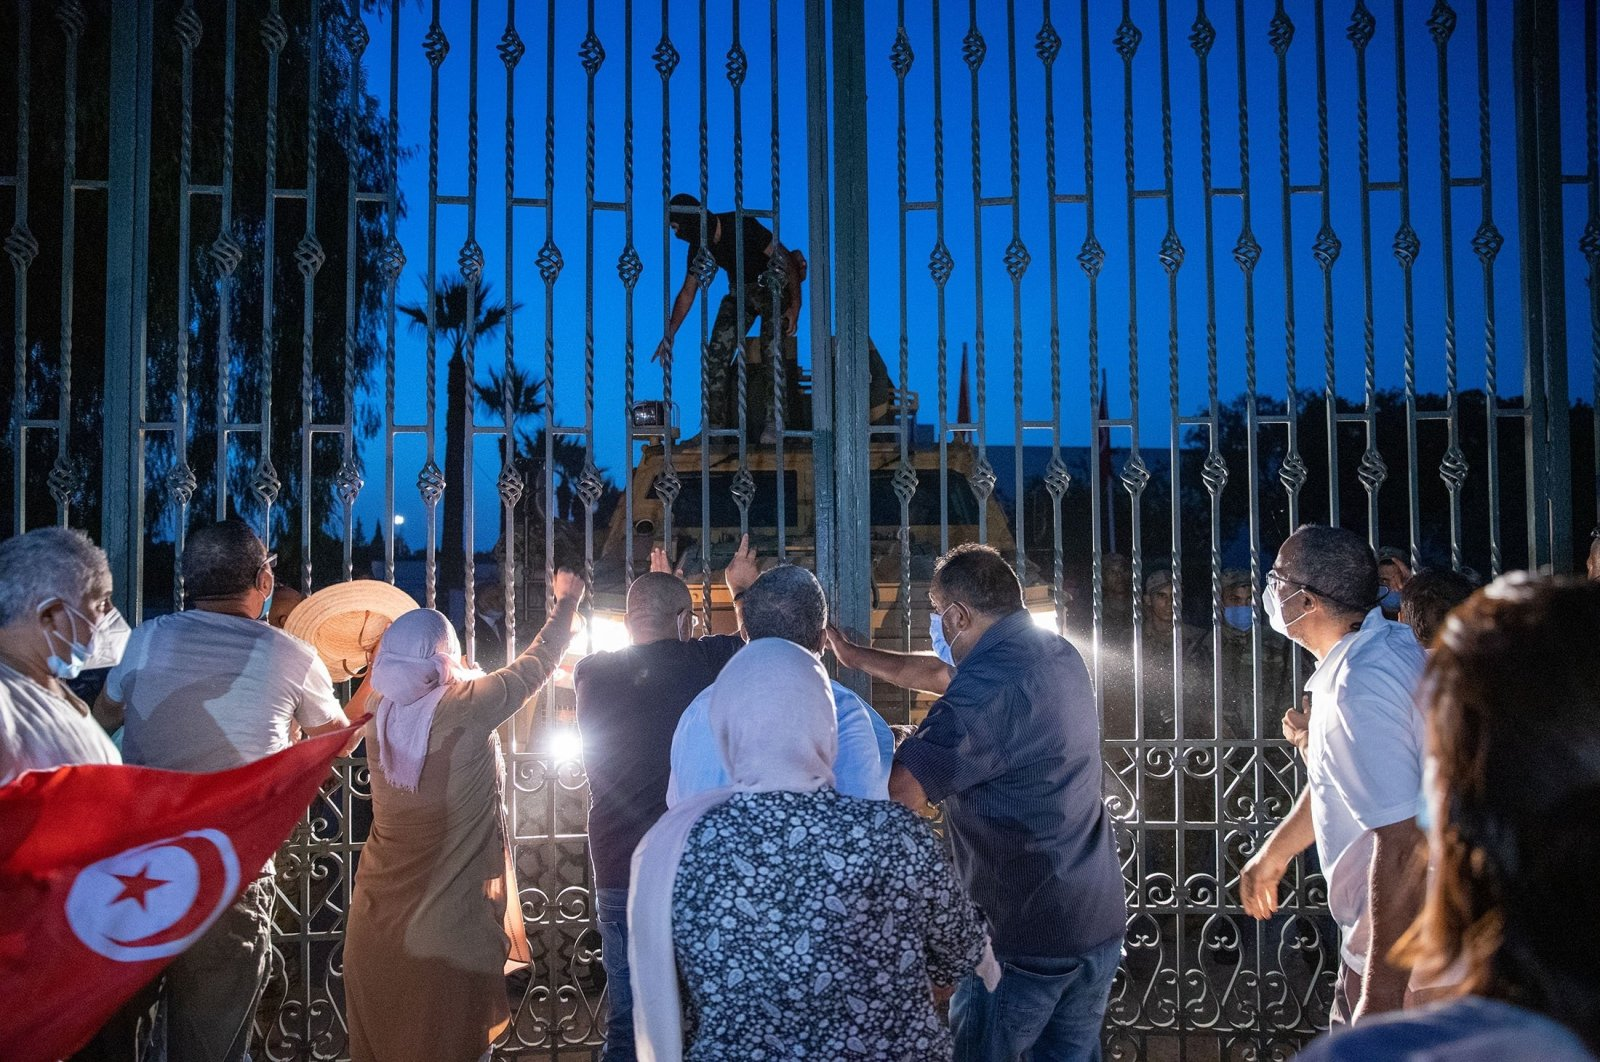 Supporters of the Ennahdha party stand at the gates of the parliament, protesting the drastic political move as a coup, July 26, 2021. (AA Photo)